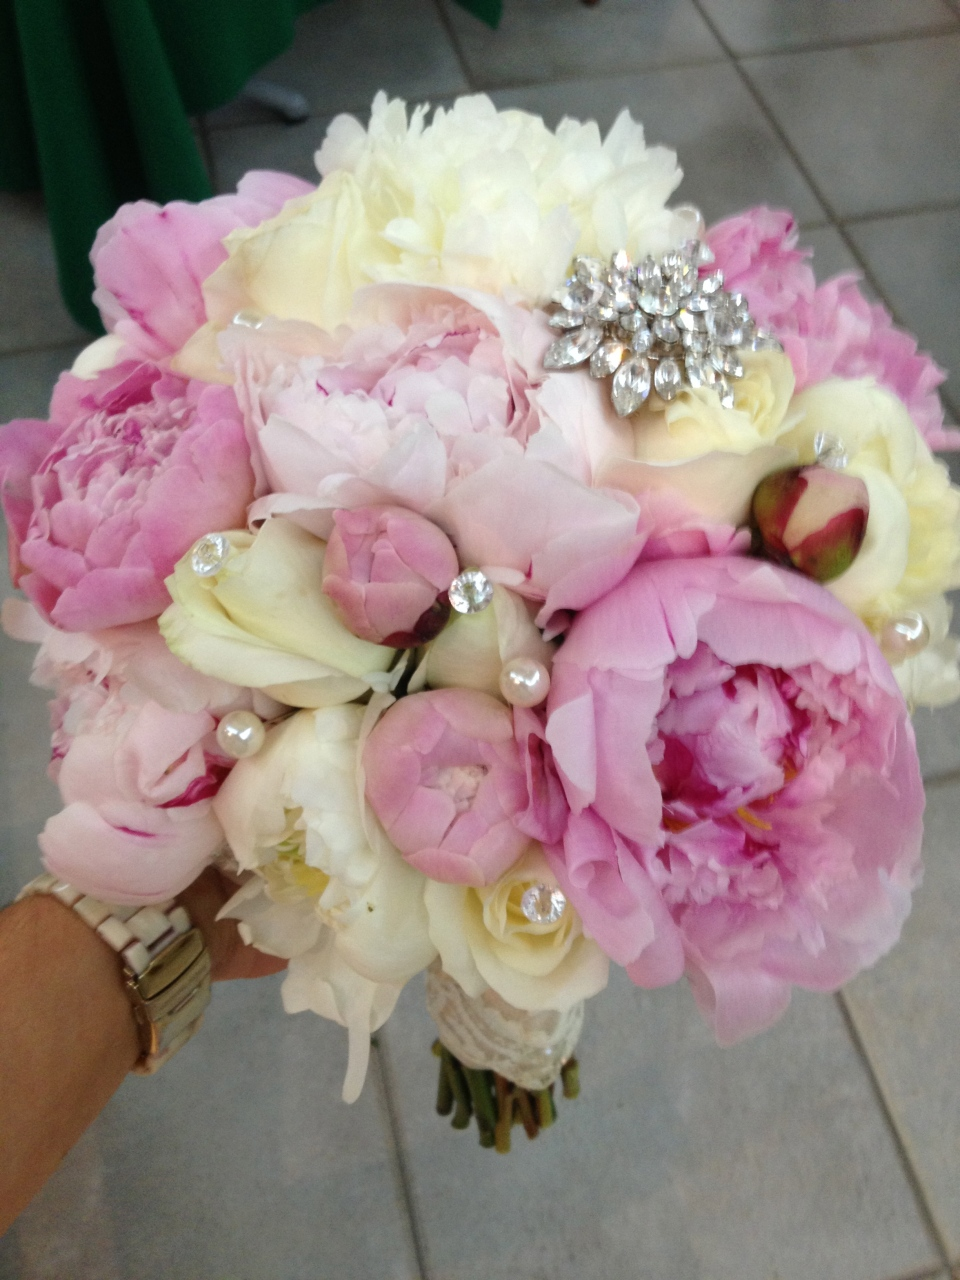 A vintage brooch and crystal and pearl pins add flair to this simple peony bouquet.